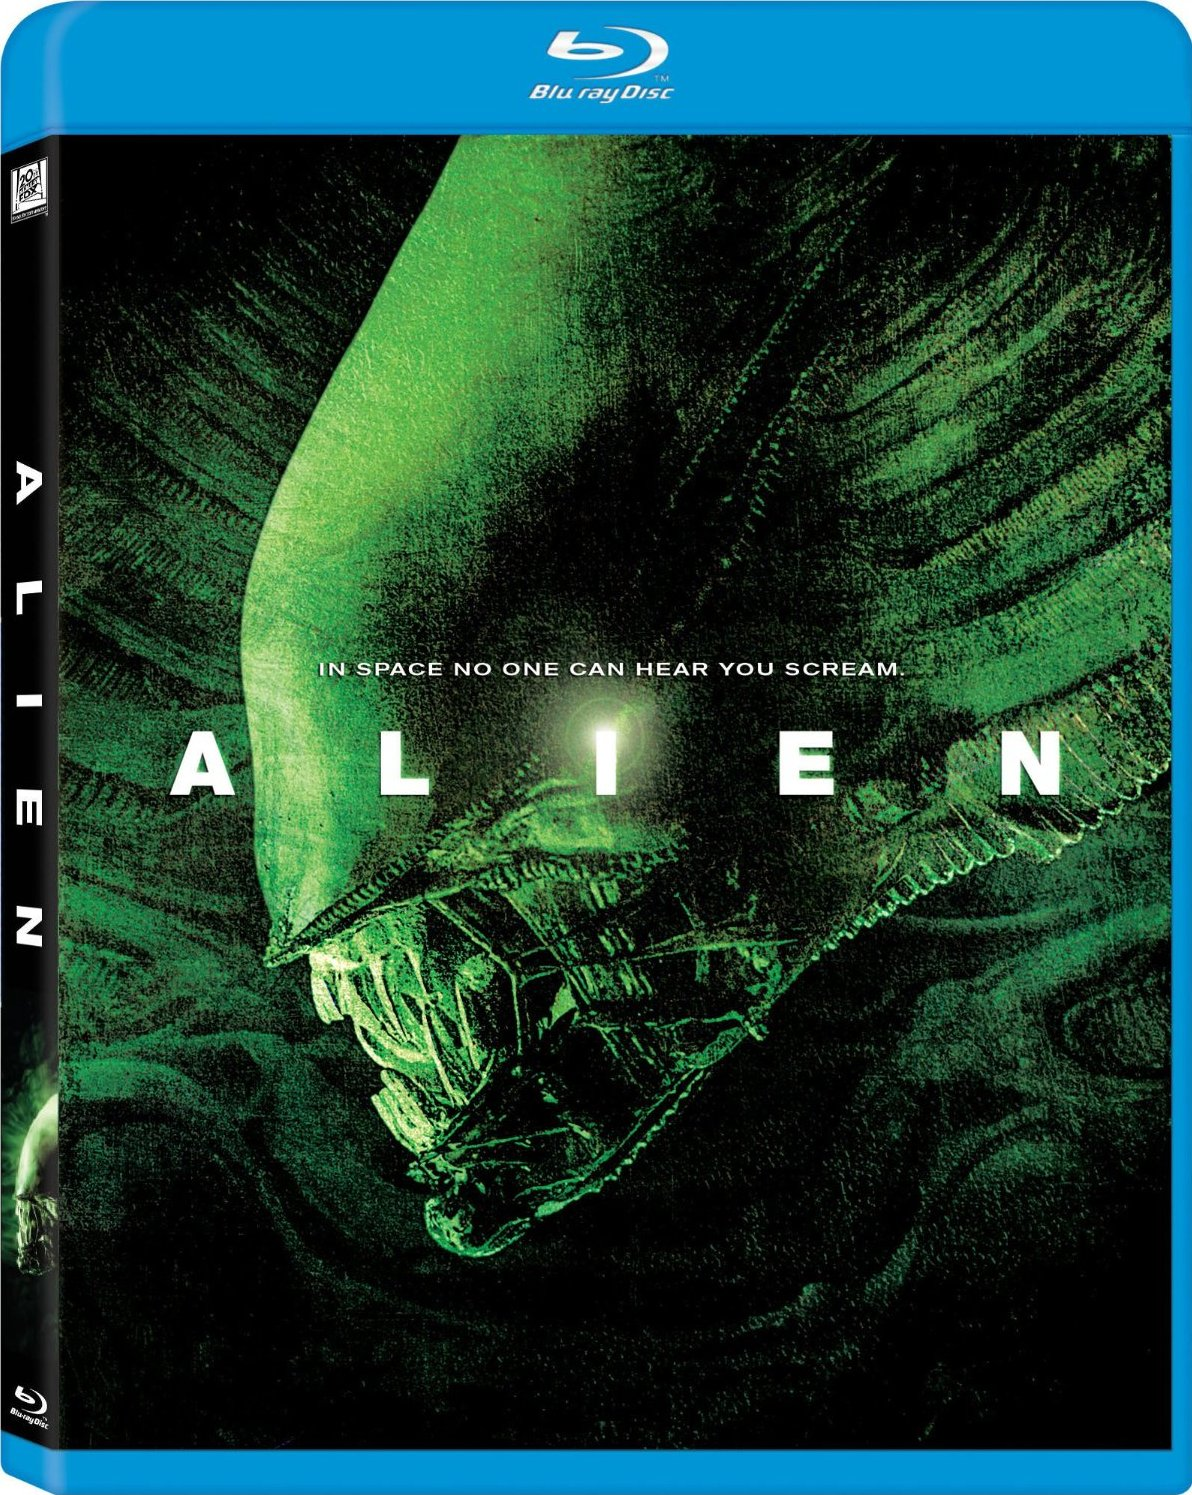 List of Alien home video releases | Alien Anthology Wiki ...